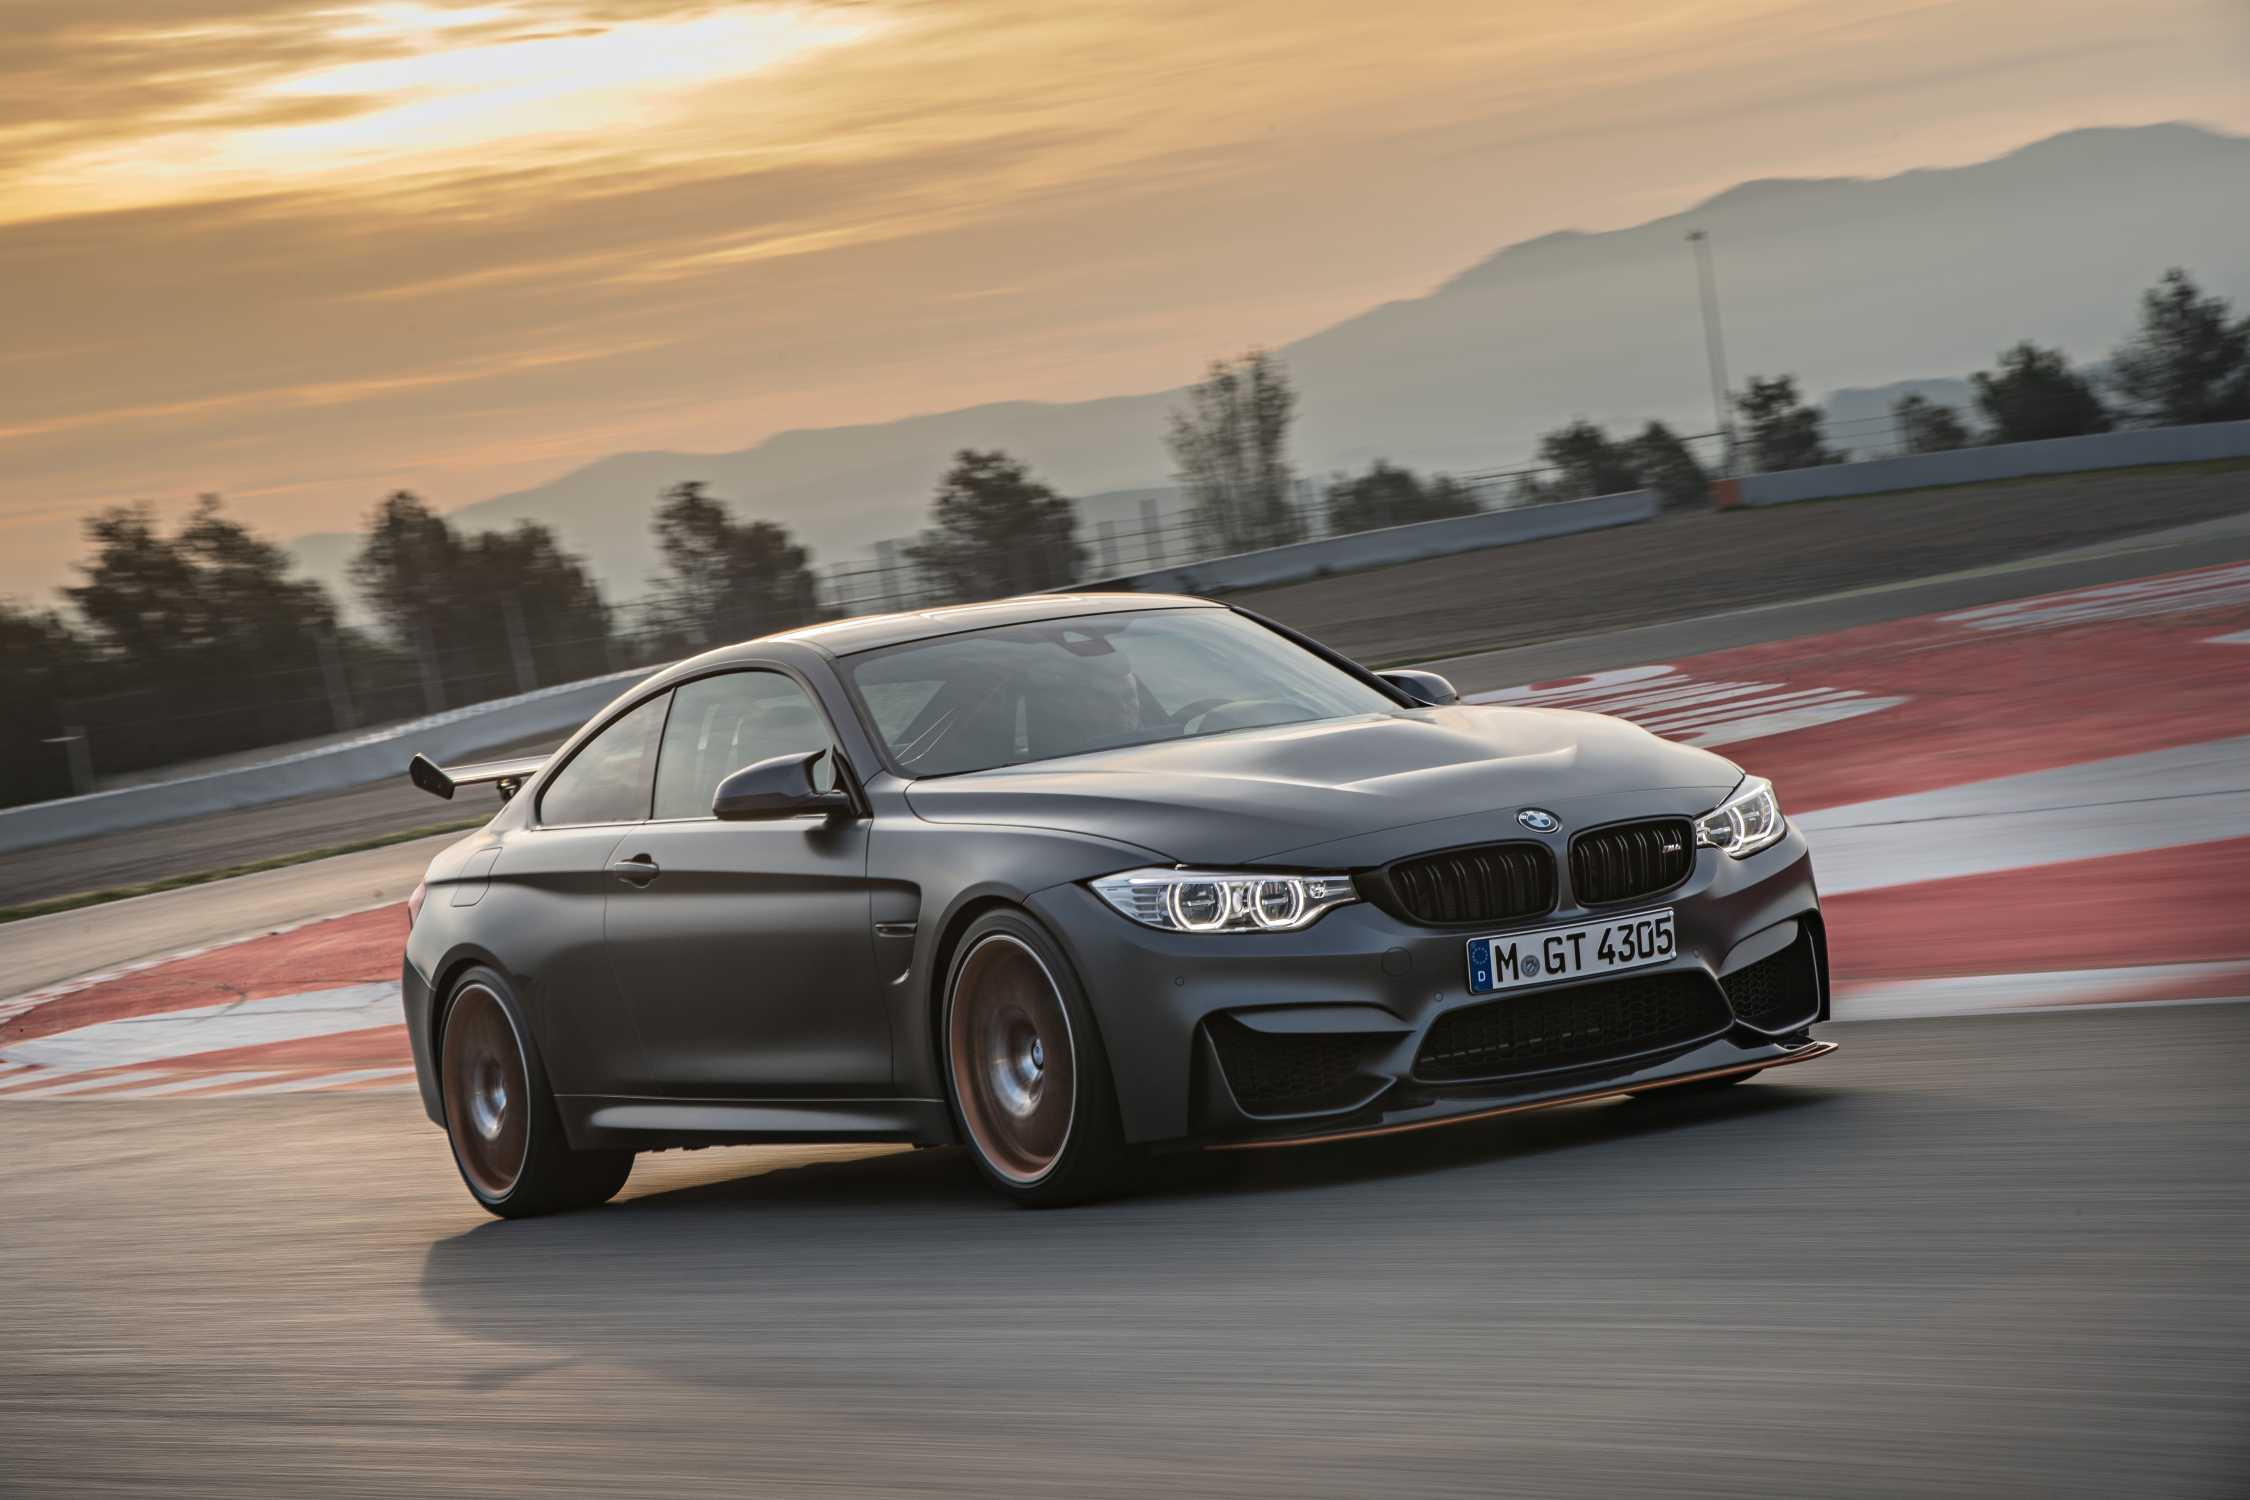 The new BMW M4 GTS